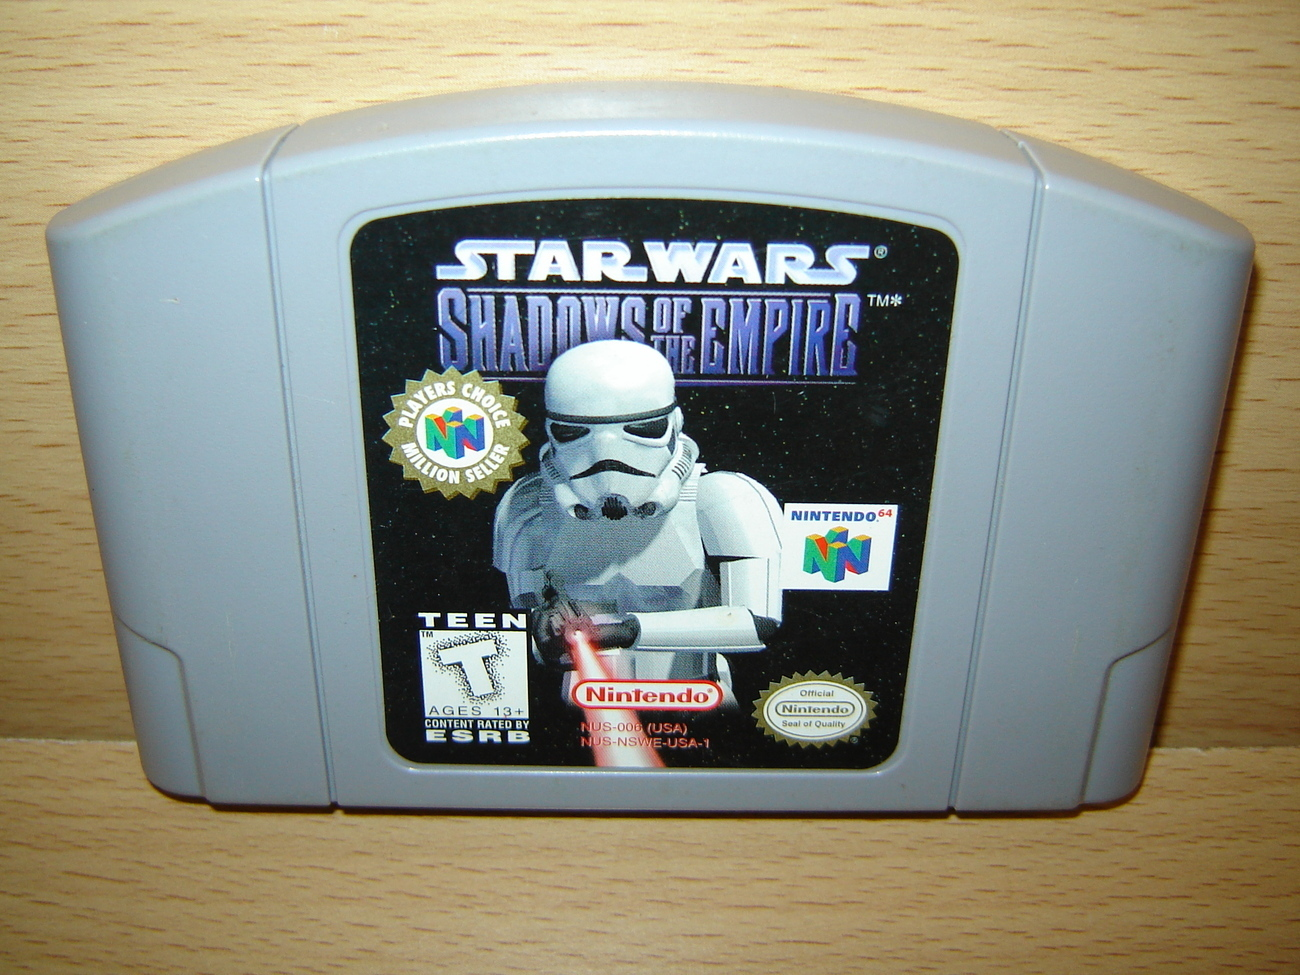 Star Wars SHADOWS OF THE EMPIRE Nintendo 64 N64 Game